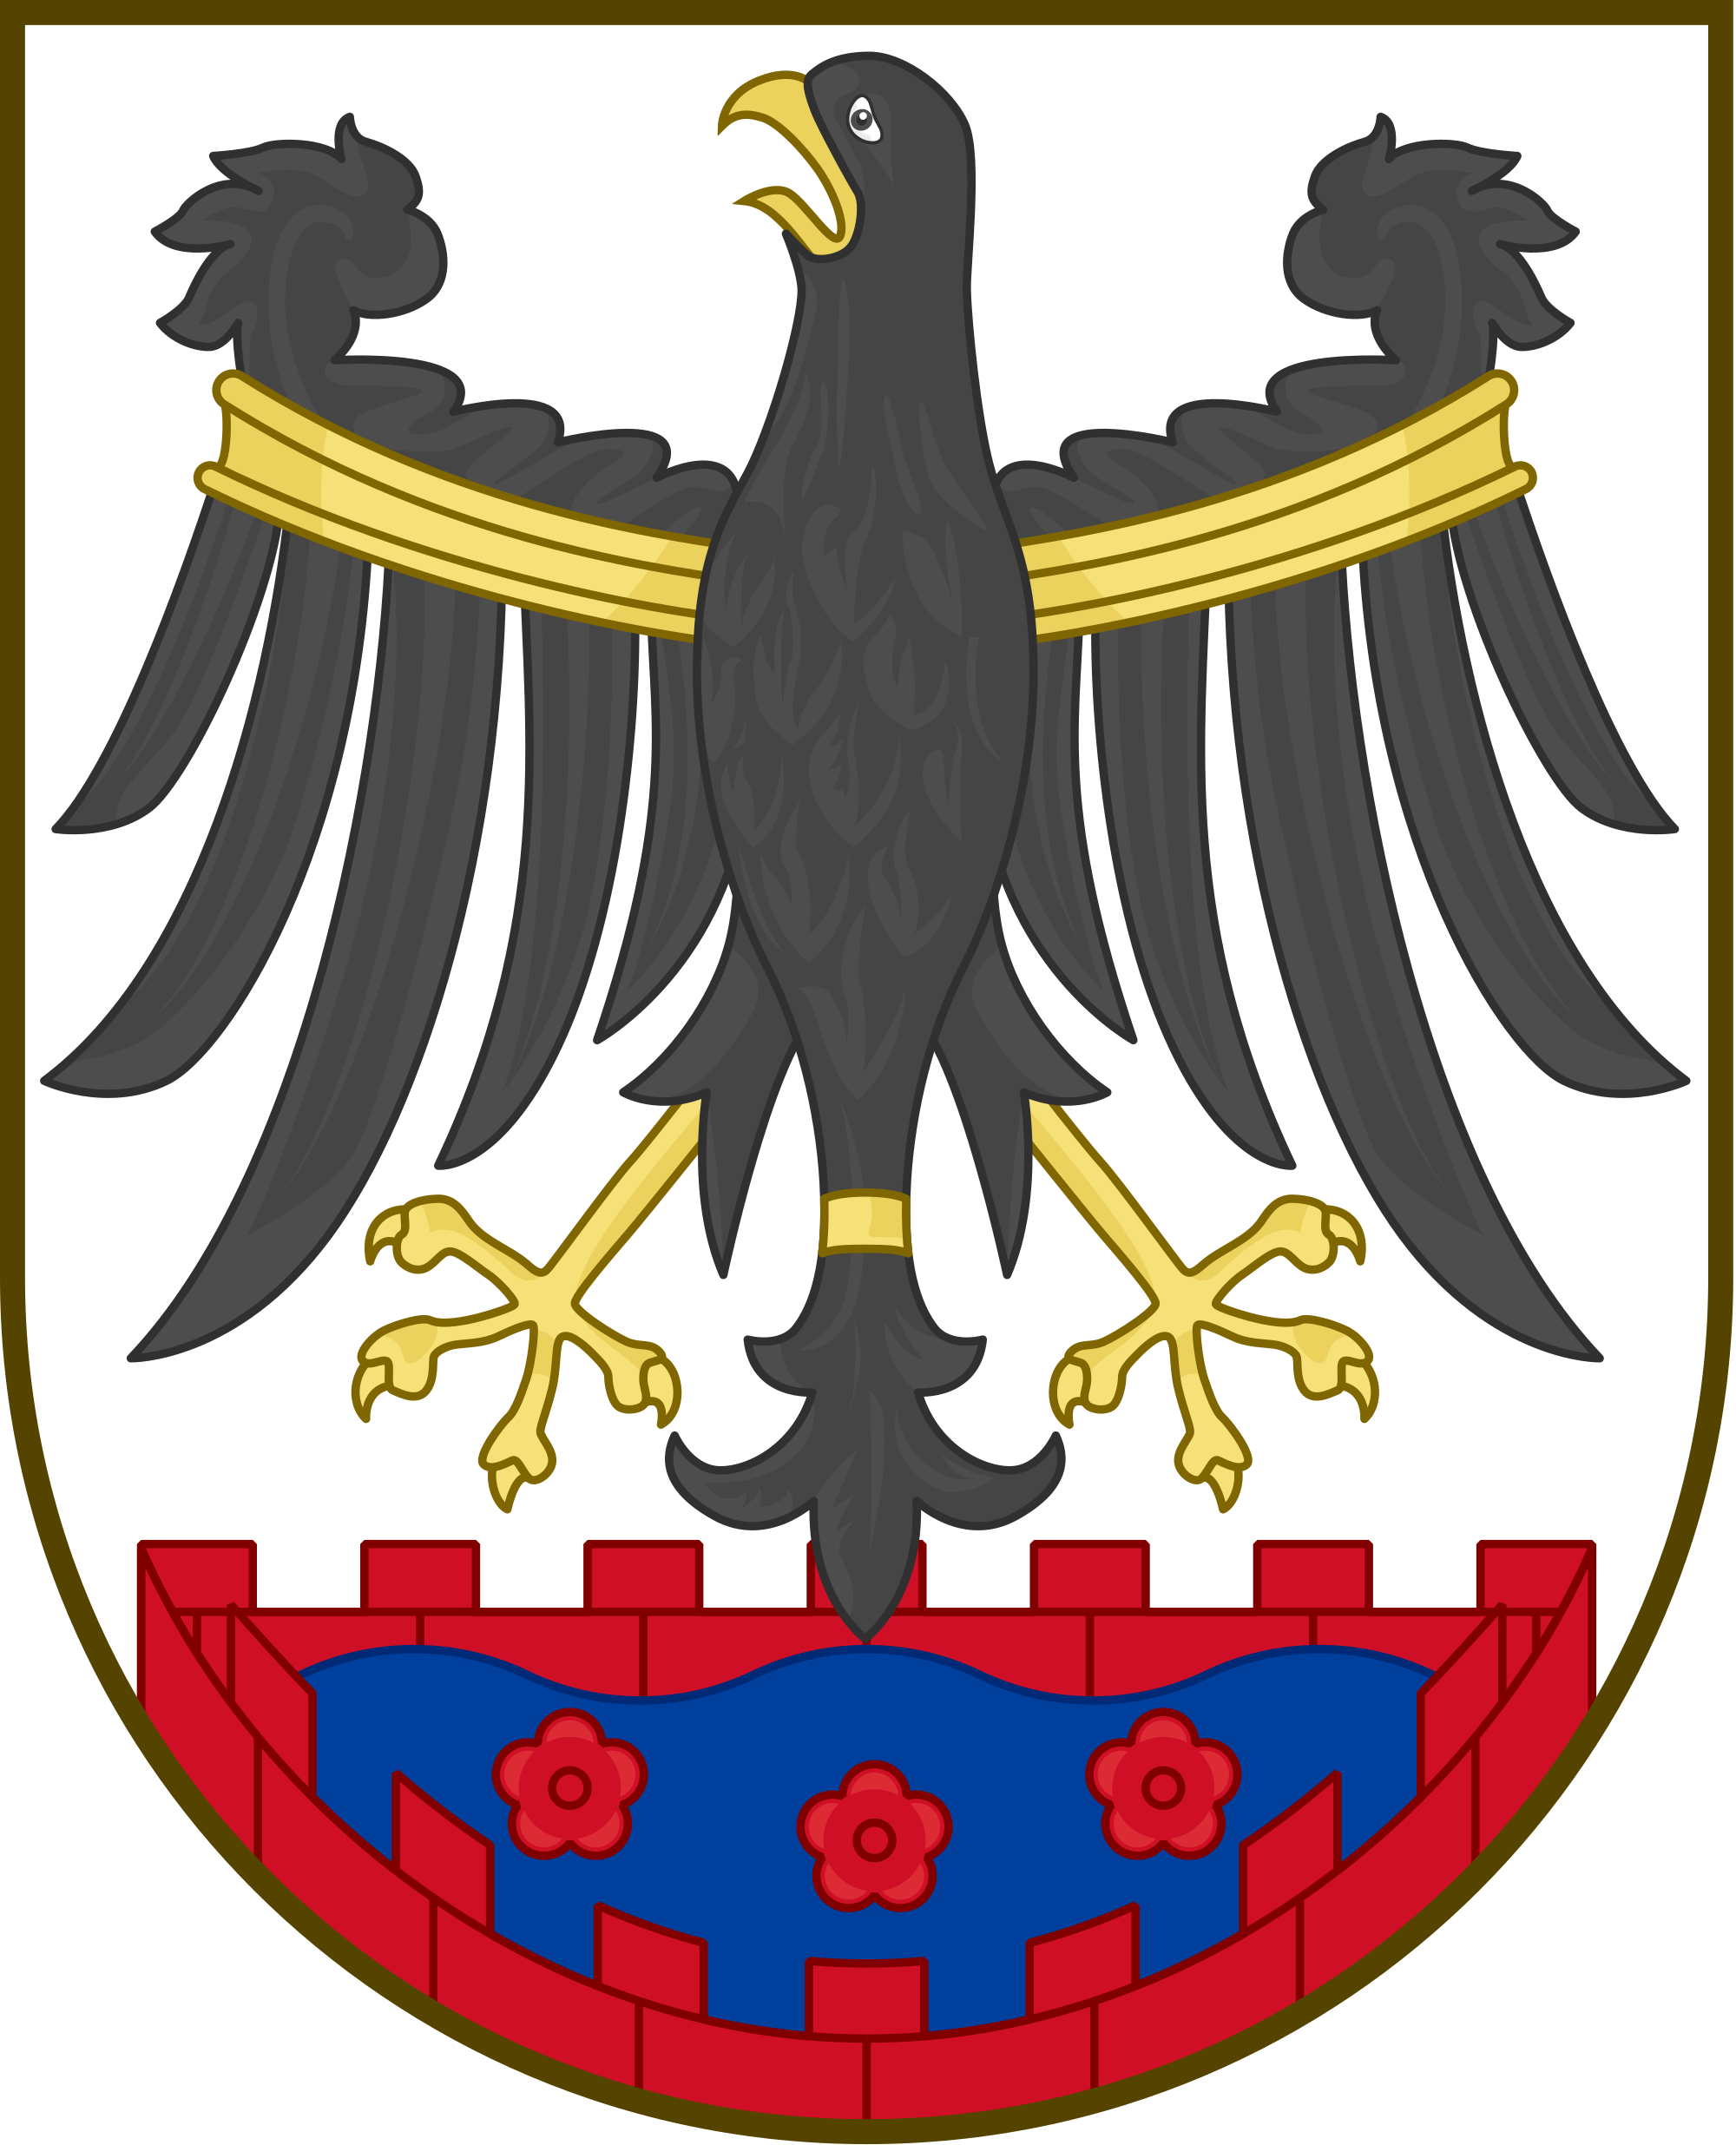 File:Coat of arms of Roskilde.svg.